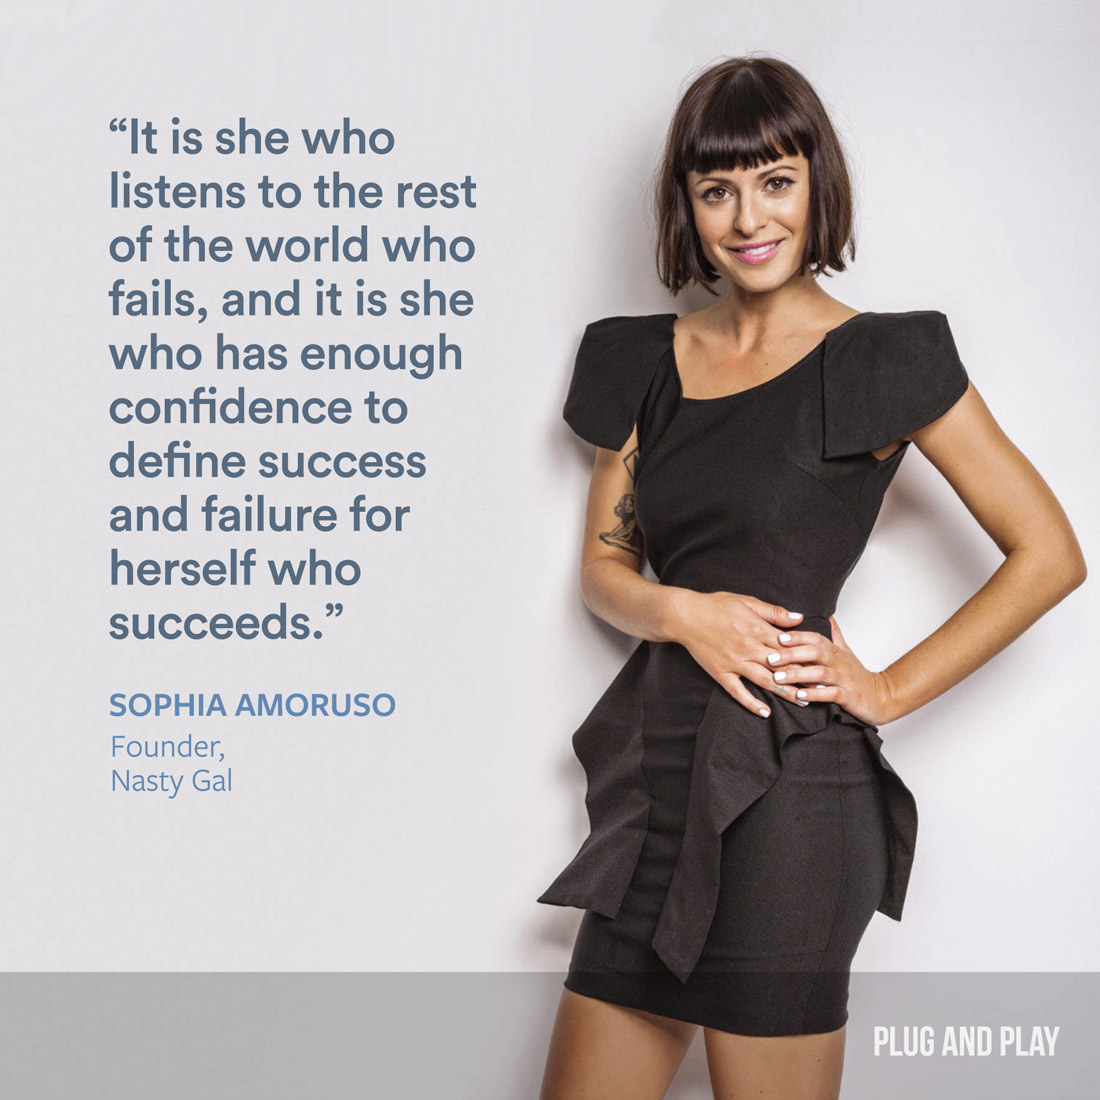 sophia amoruso female founder